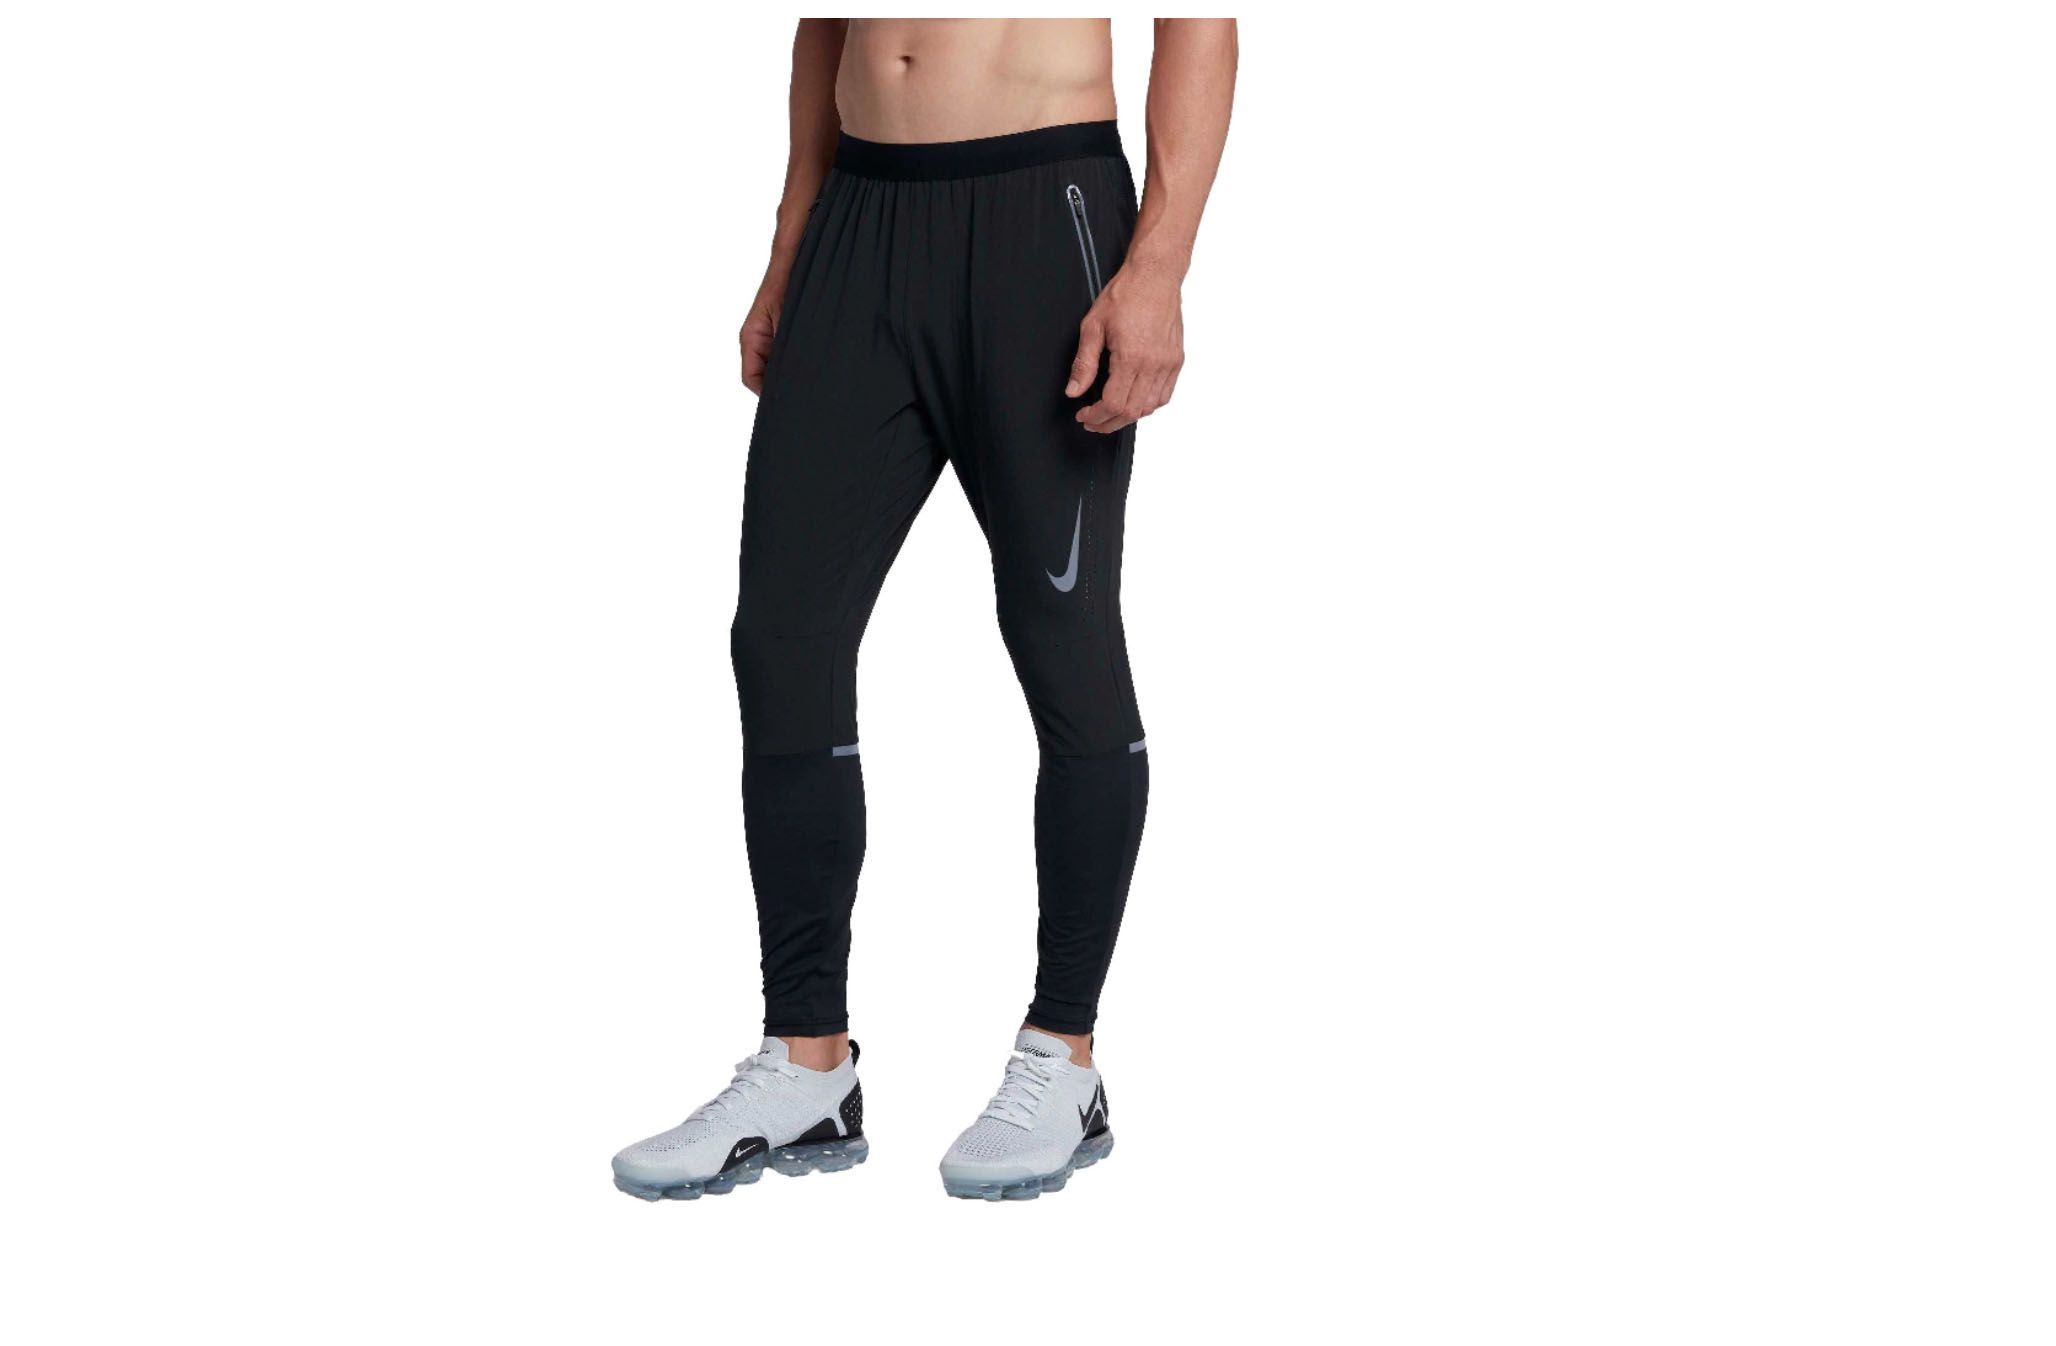 305c350d4f Best Running Leggings - Workout Tights 2019